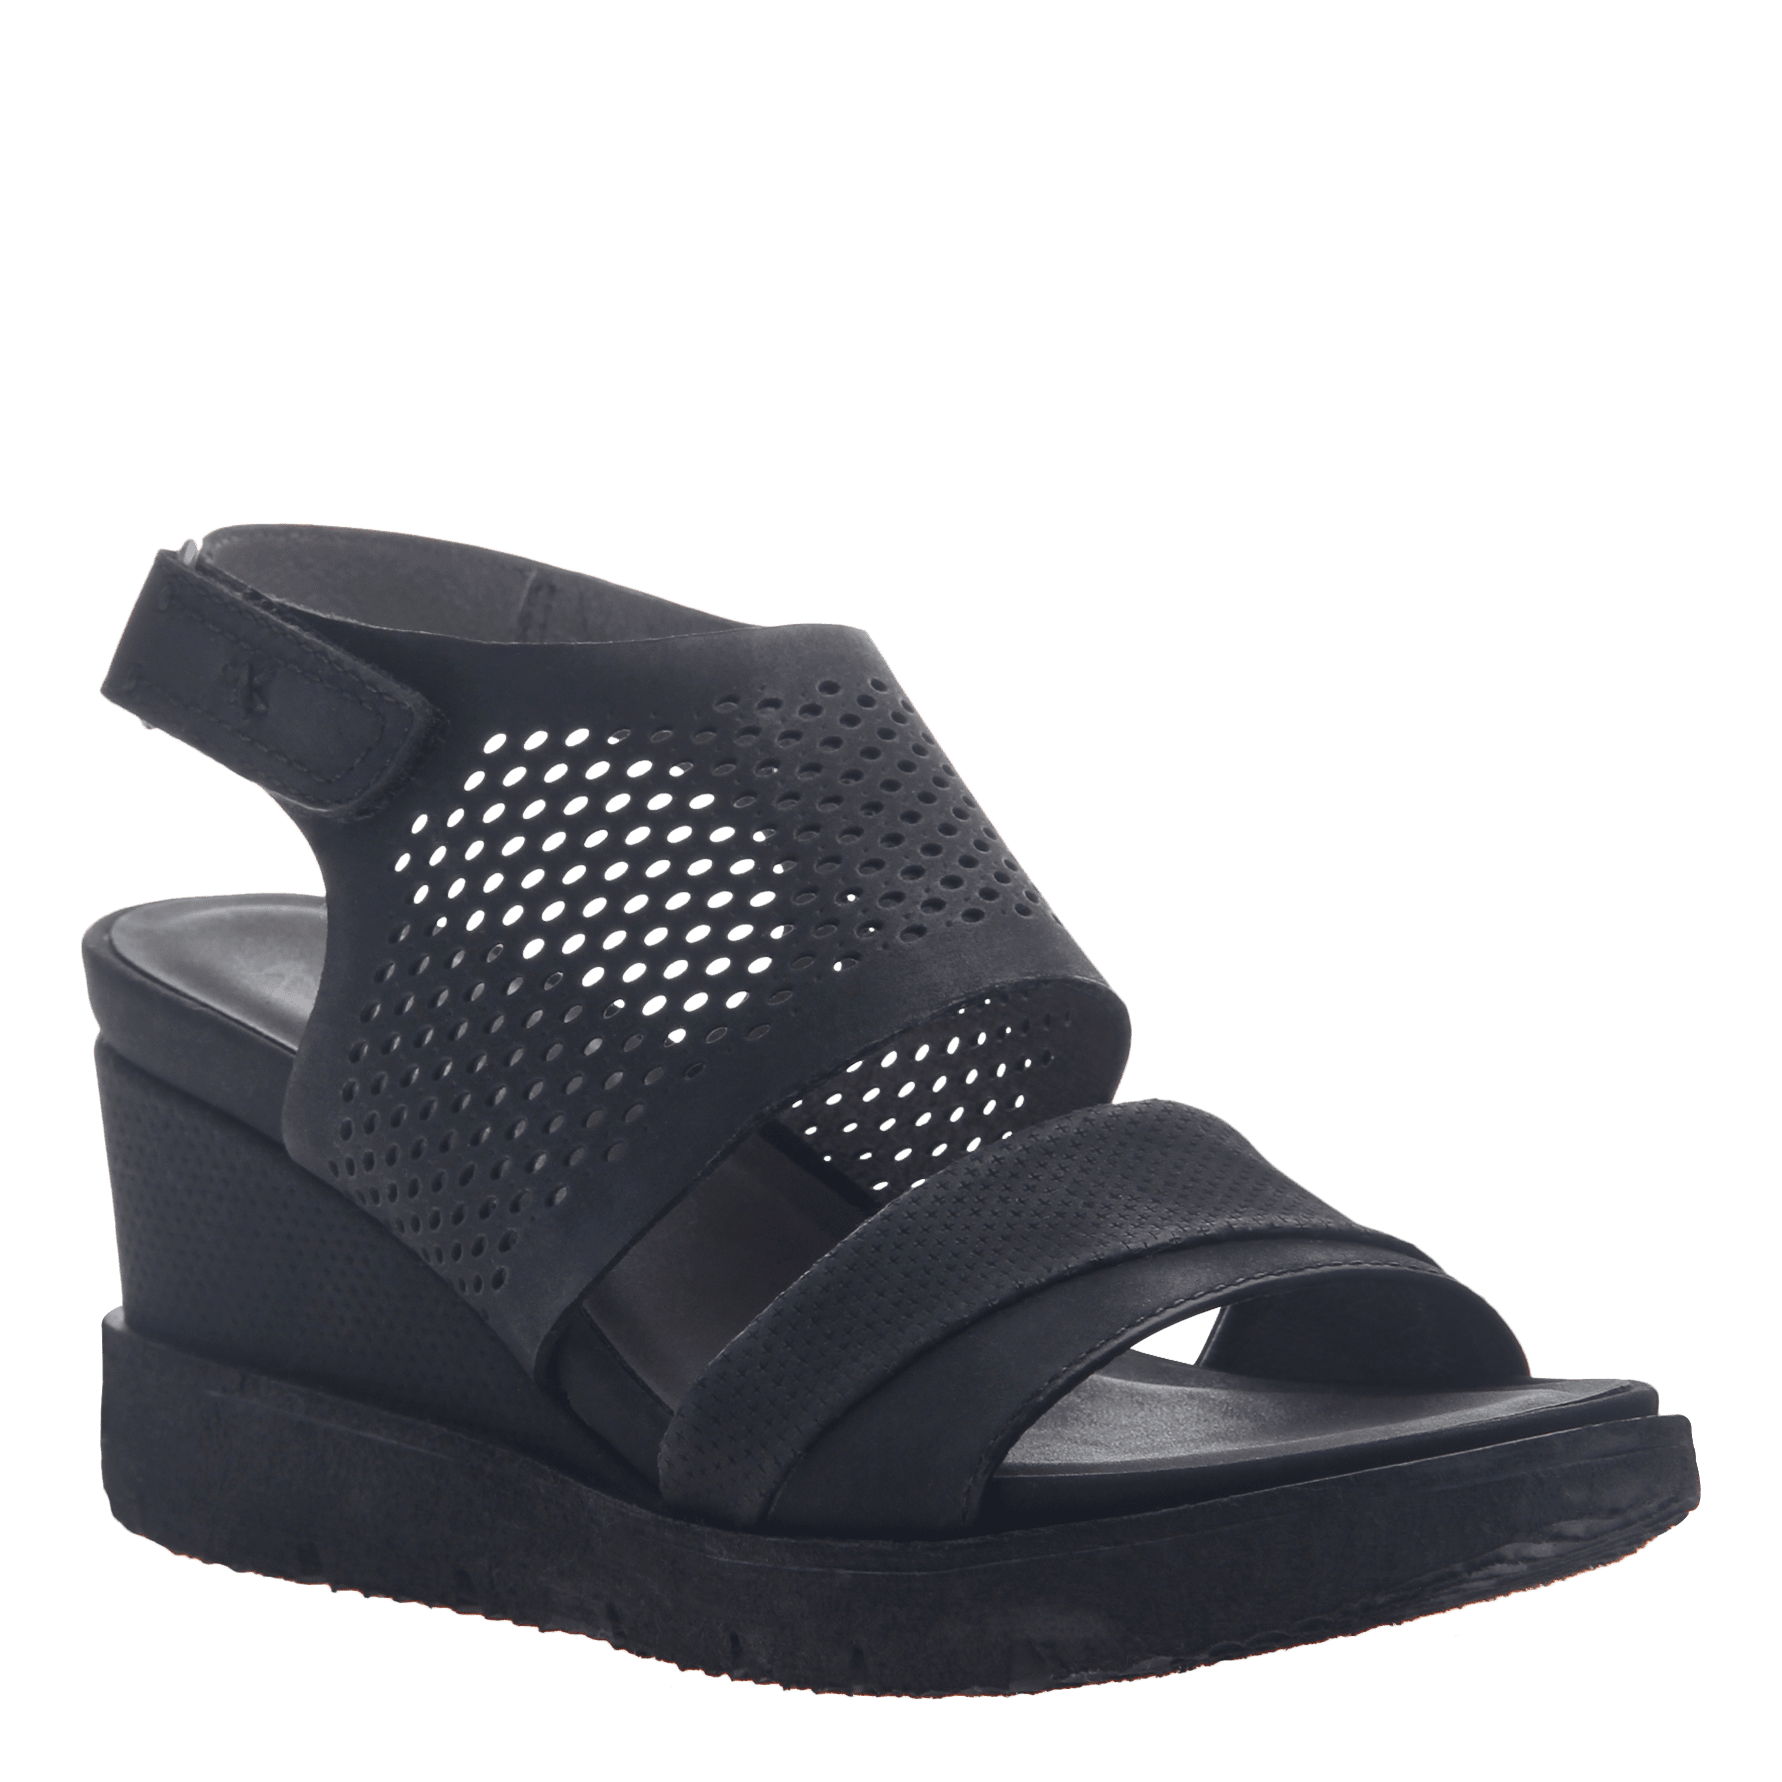 fa98692c4742 Womens light weight sandal wedge Milky Way in Black